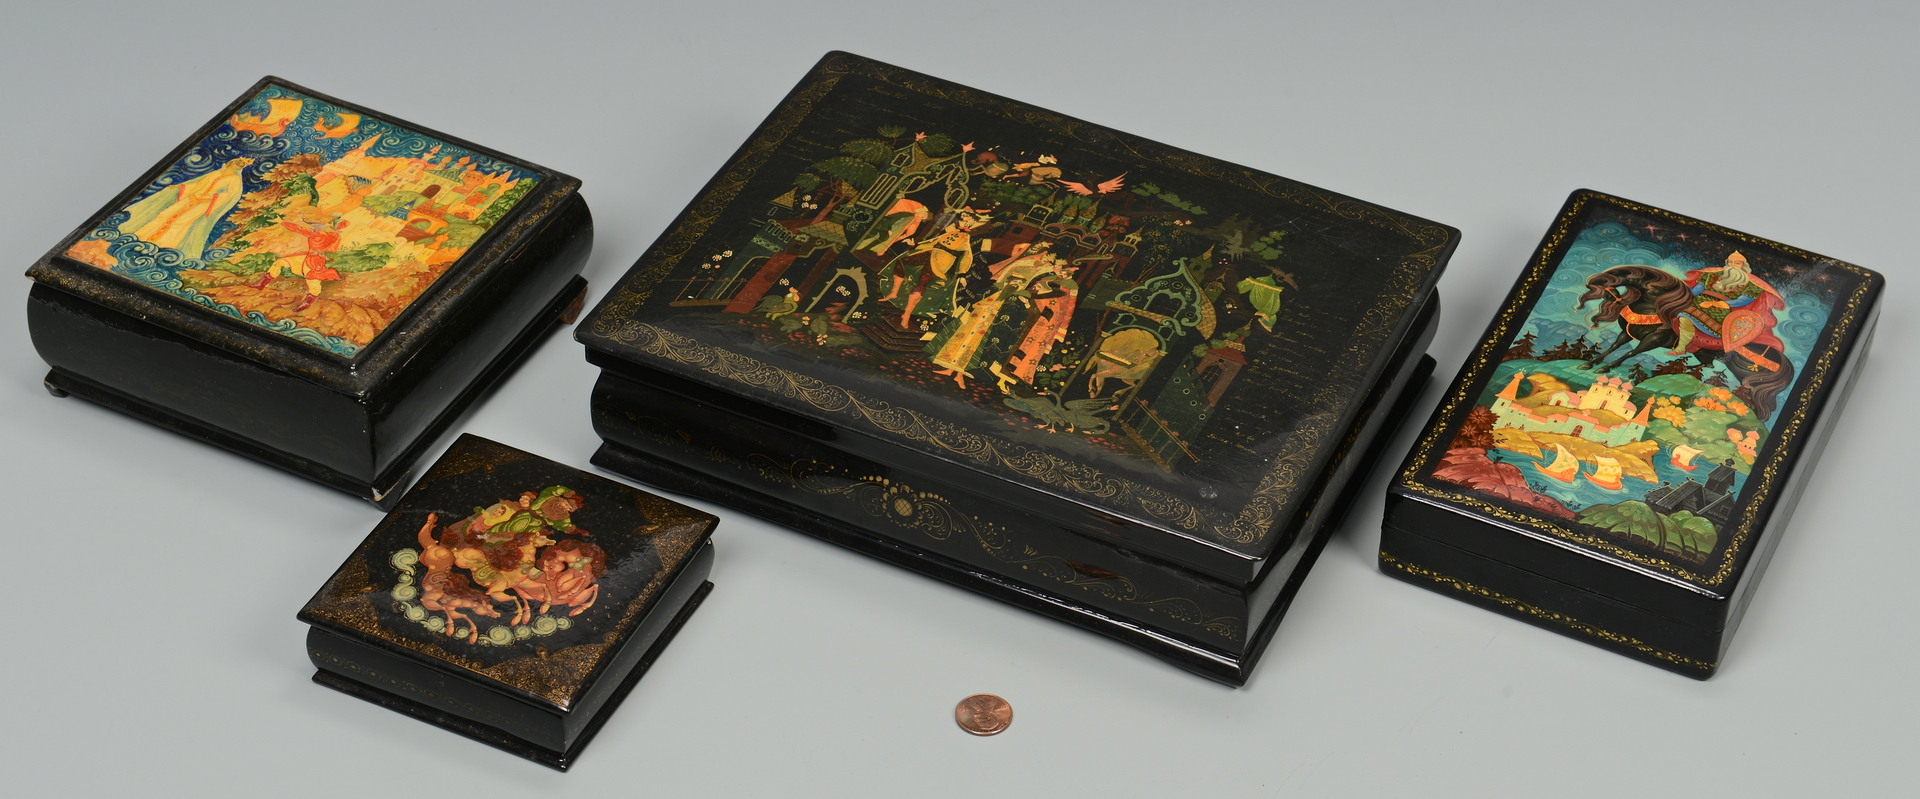 Unbelievable Russian Lacquer Boxes From 101